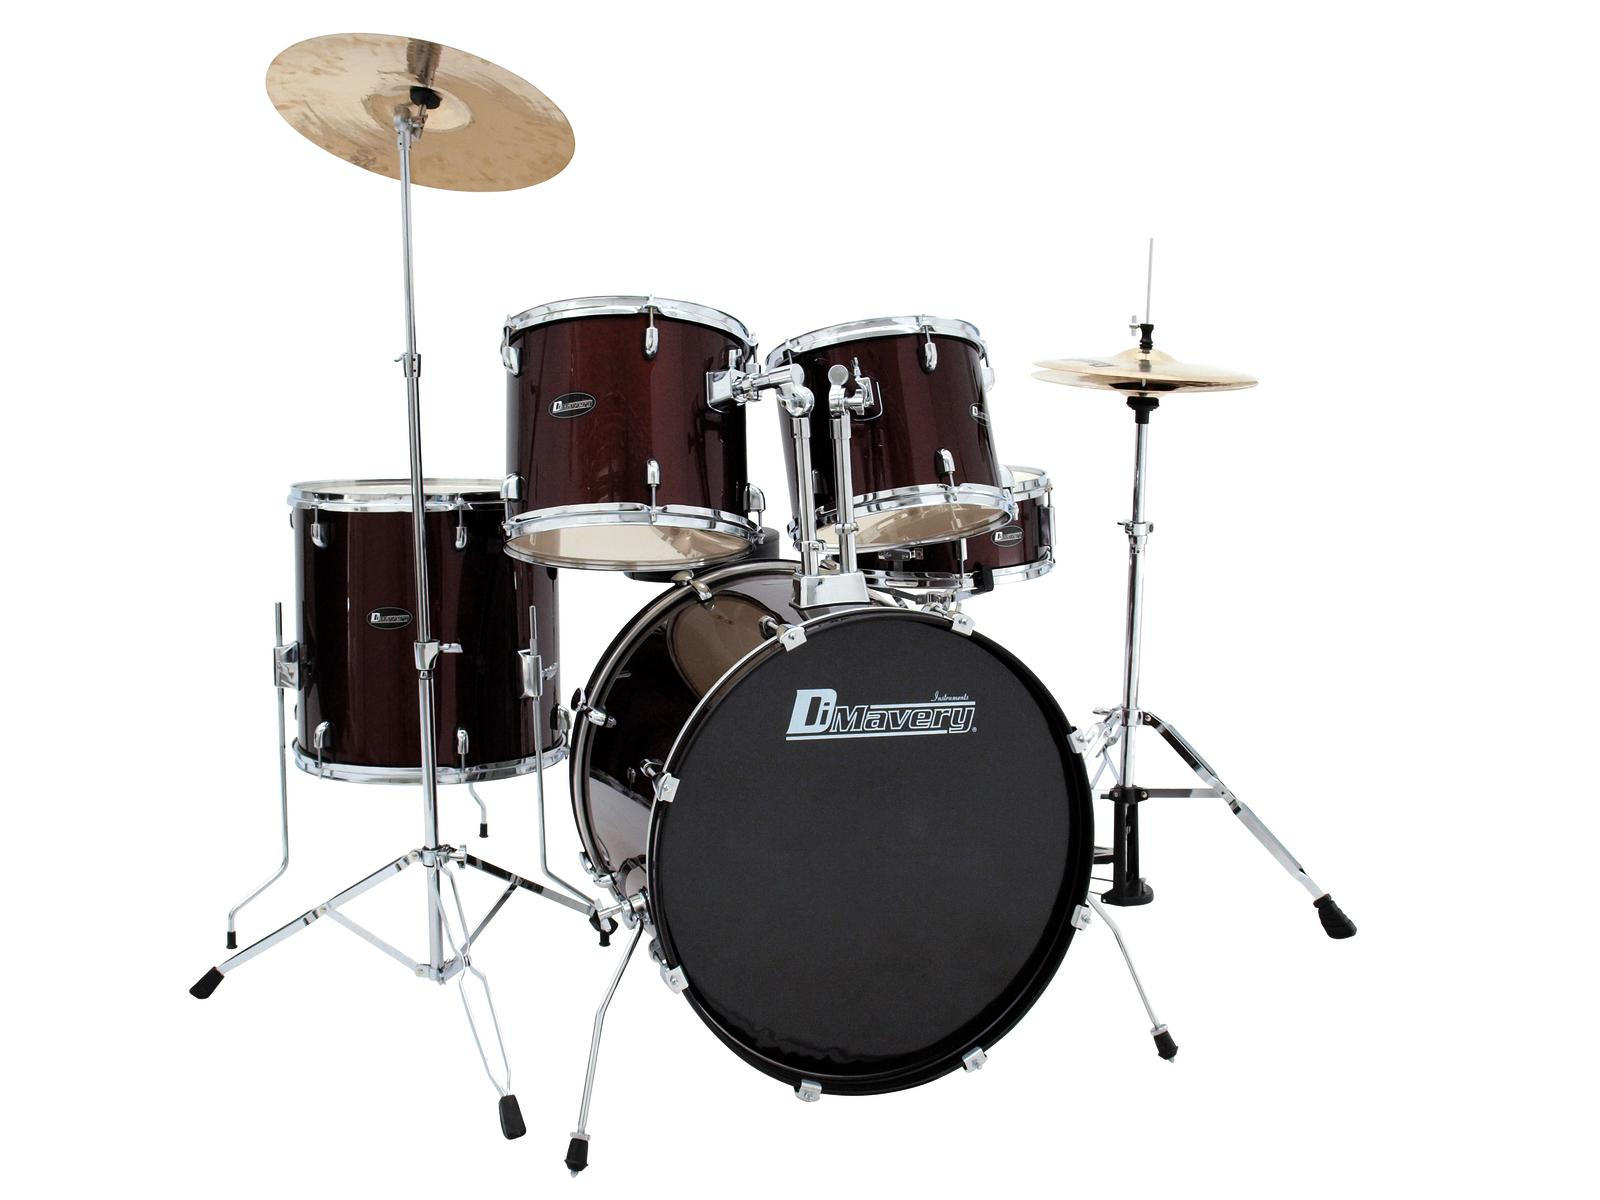 DIMAVERY DS-205B Drum Set, rosso